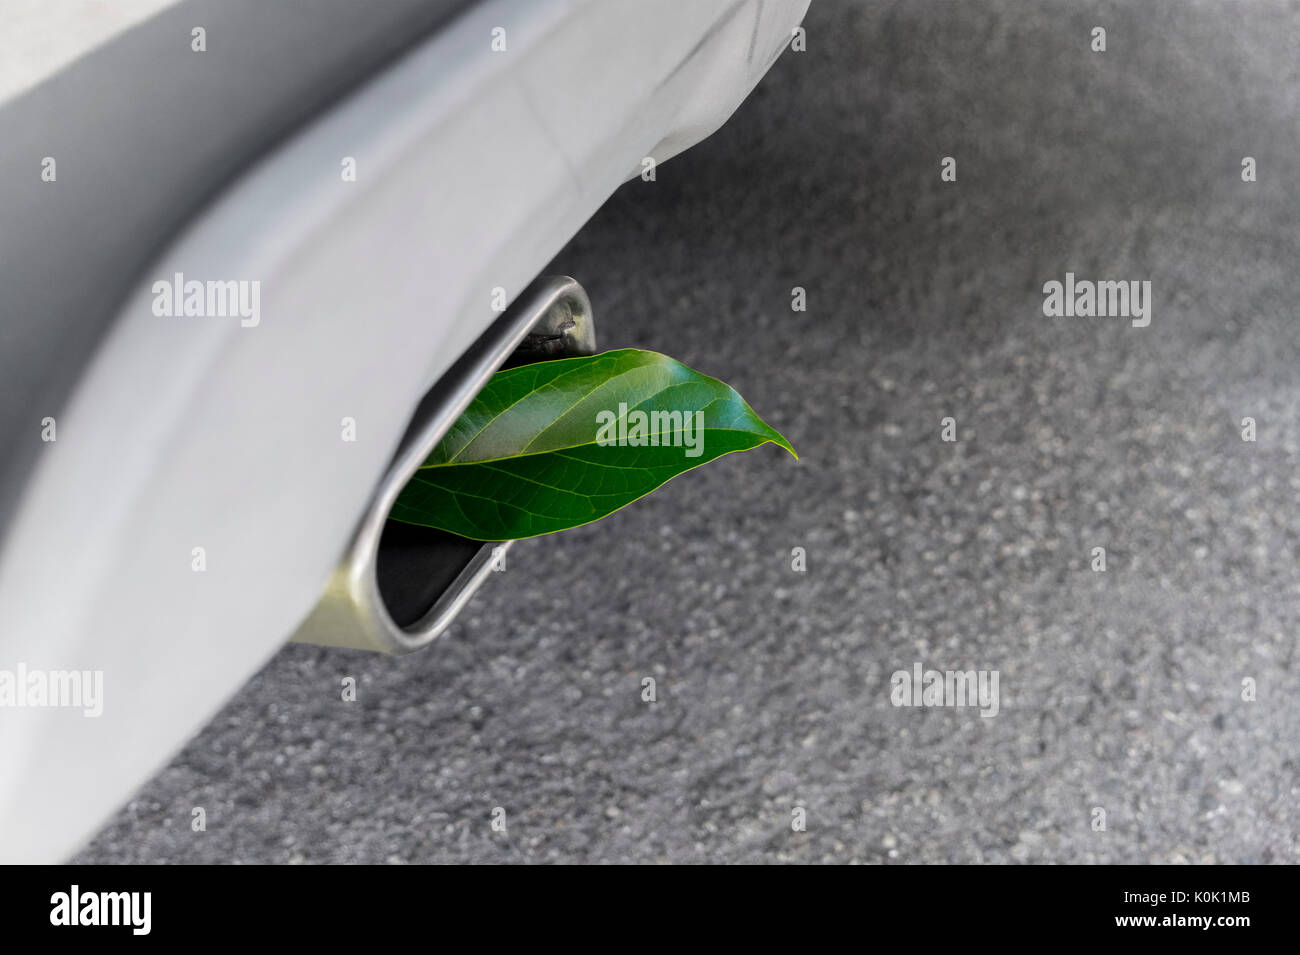 Vehicle greenhouse gas emissions. Fuel efficient car muffler with a green leaf - Stock Image